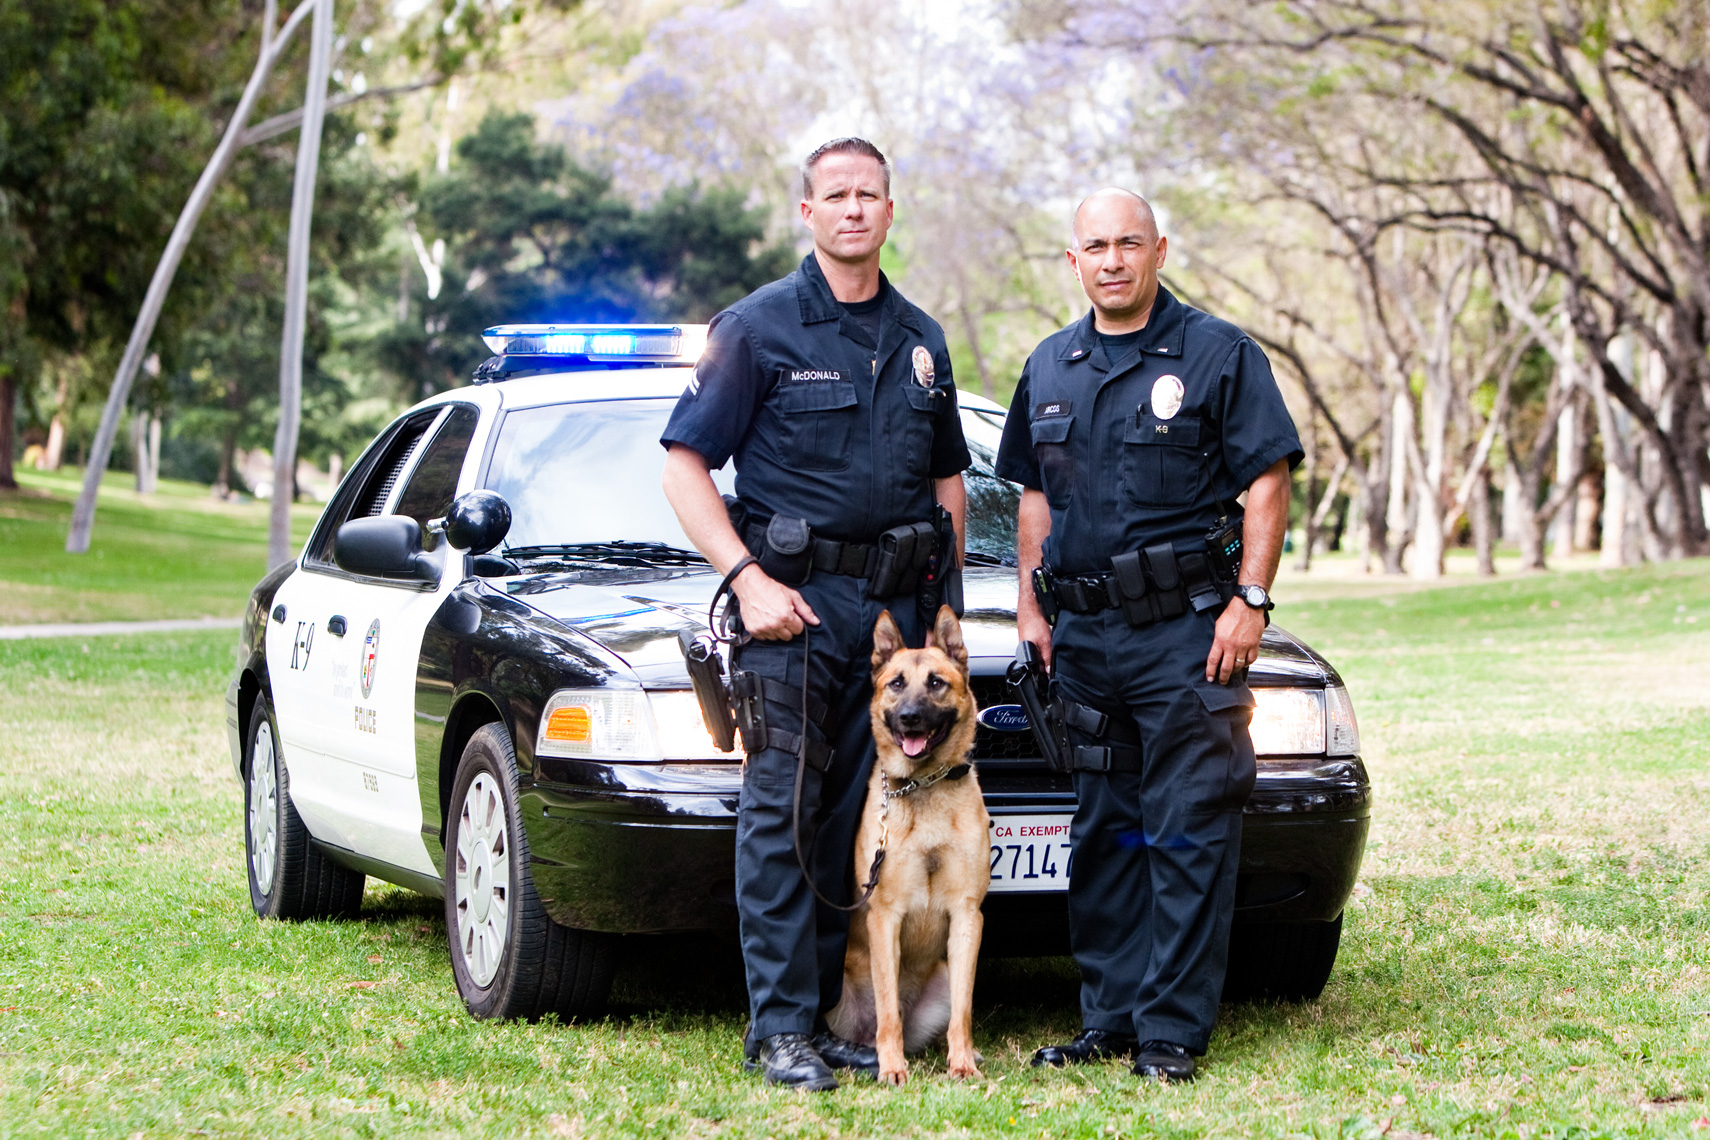 Los Angeles Dog Photography, Michael Brian, LAPD Officers and K-9, Blegian Malinois, Cesar Millan, Los Angeles Police Department, Cesar